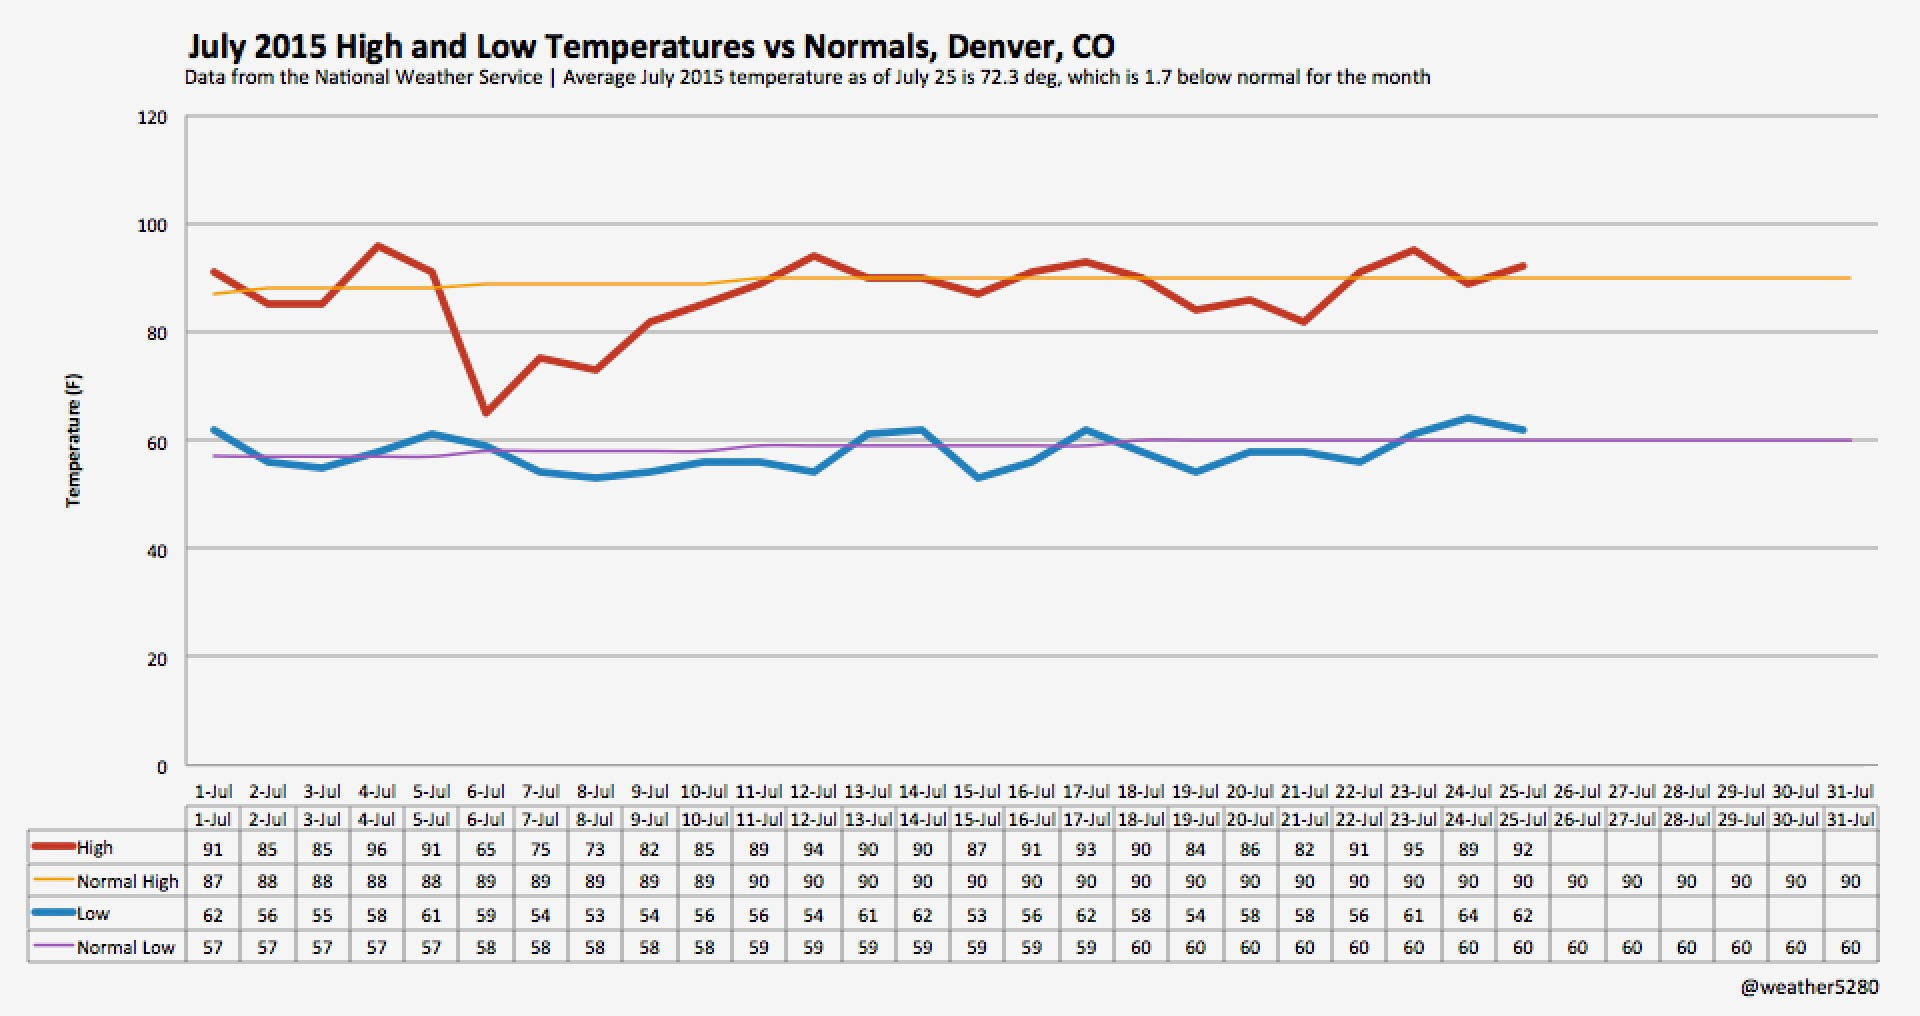 July 2015 to date high and low temperatures compared to normal for Denver, CO